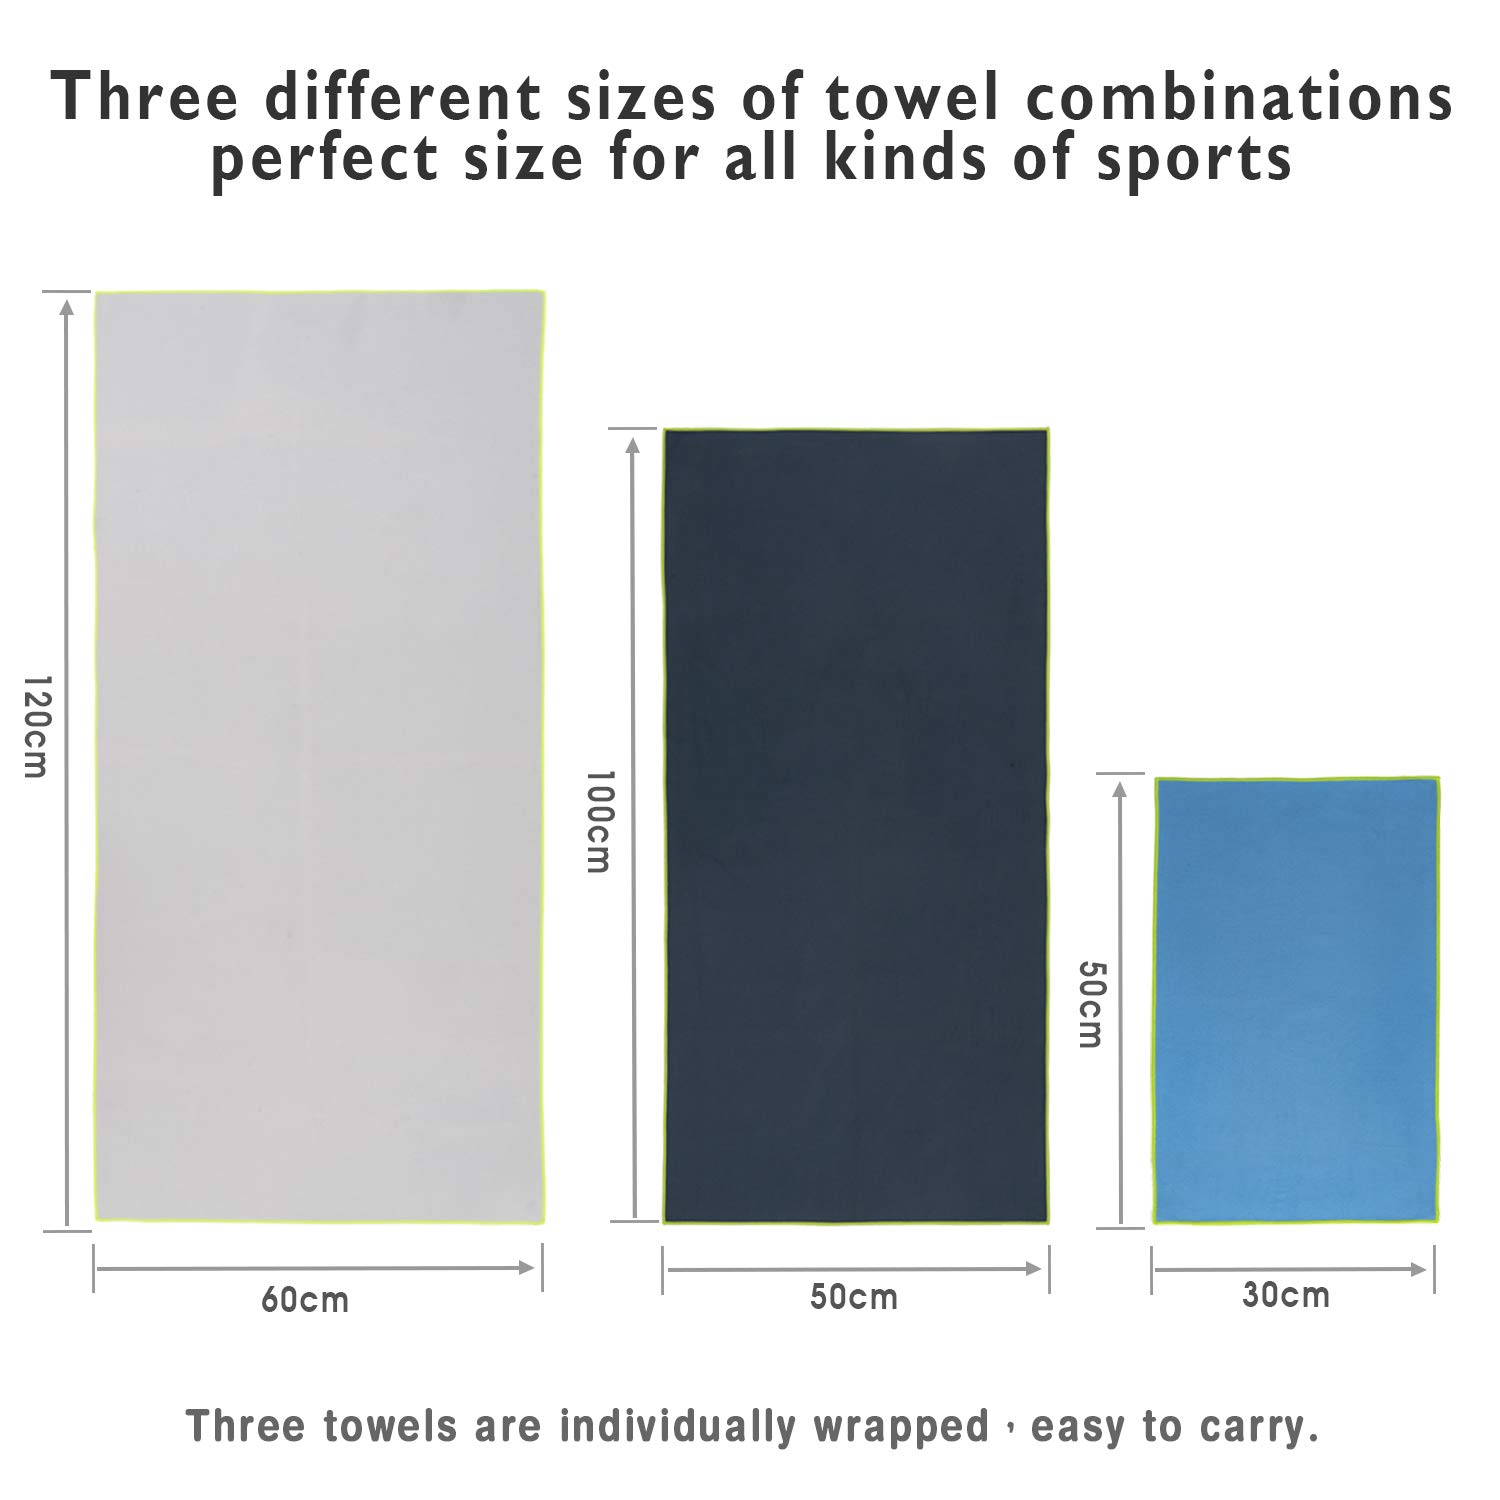 HBselect 3 Pack Microfibre Towel Set,Quick Dry Lightweight Sport Towels for Gym Swimming Yoga Camping Travel Large 60 * 120cm Grey,M 50 * 100cm Dark Blue, S 30 * 50cm Light Blue Hiking Beach